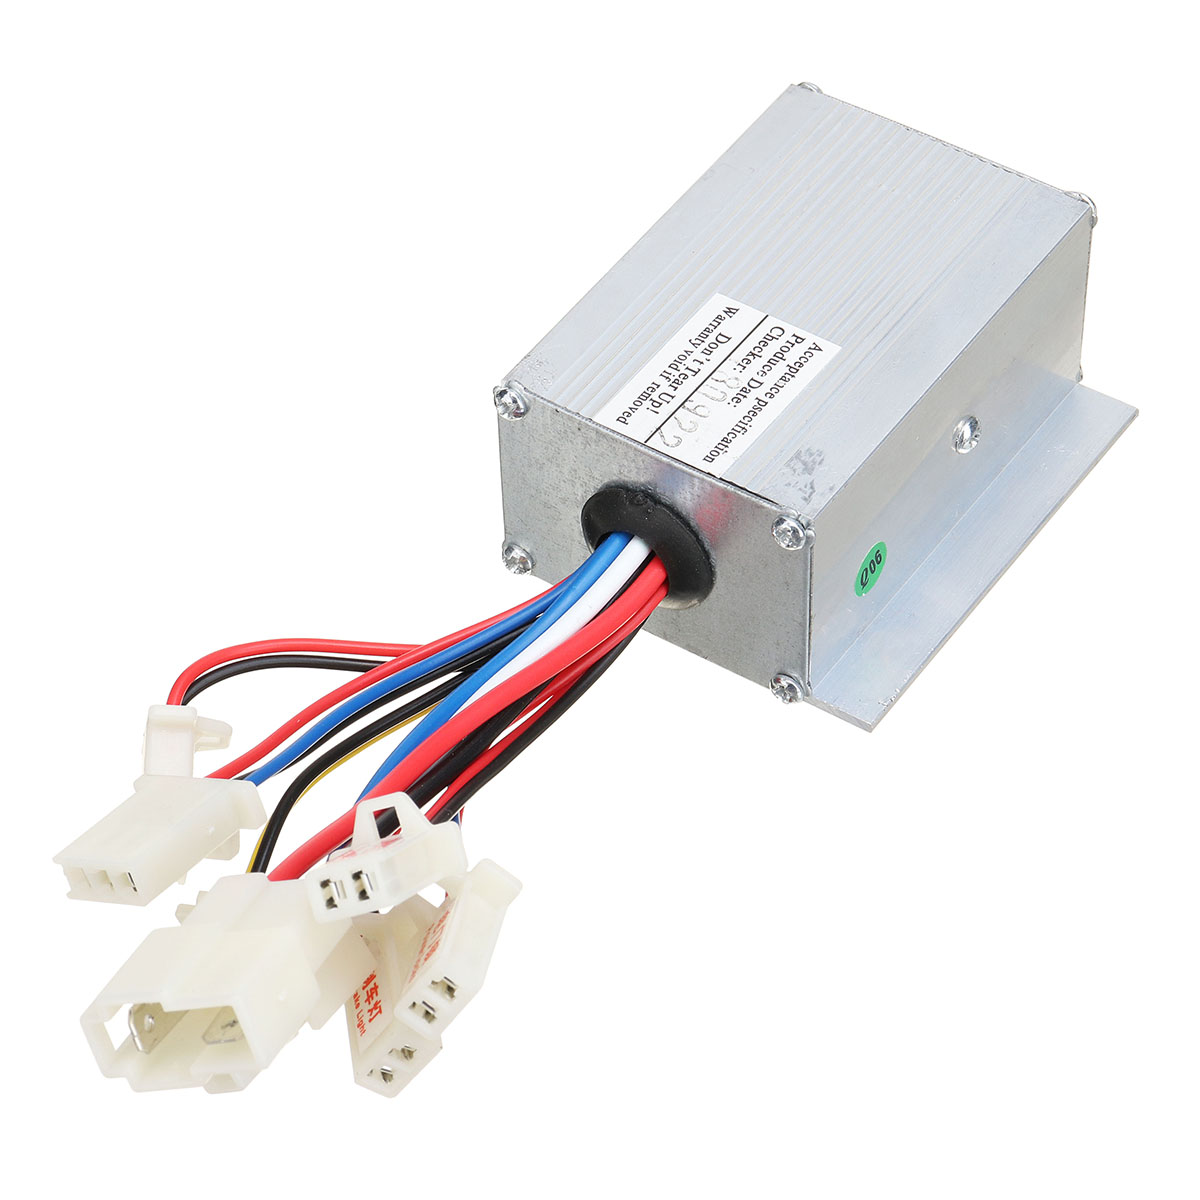 24V 250W Electric Bike Conversion Scooter Motor Controller Kit For 20-28inch Ordinary Bike